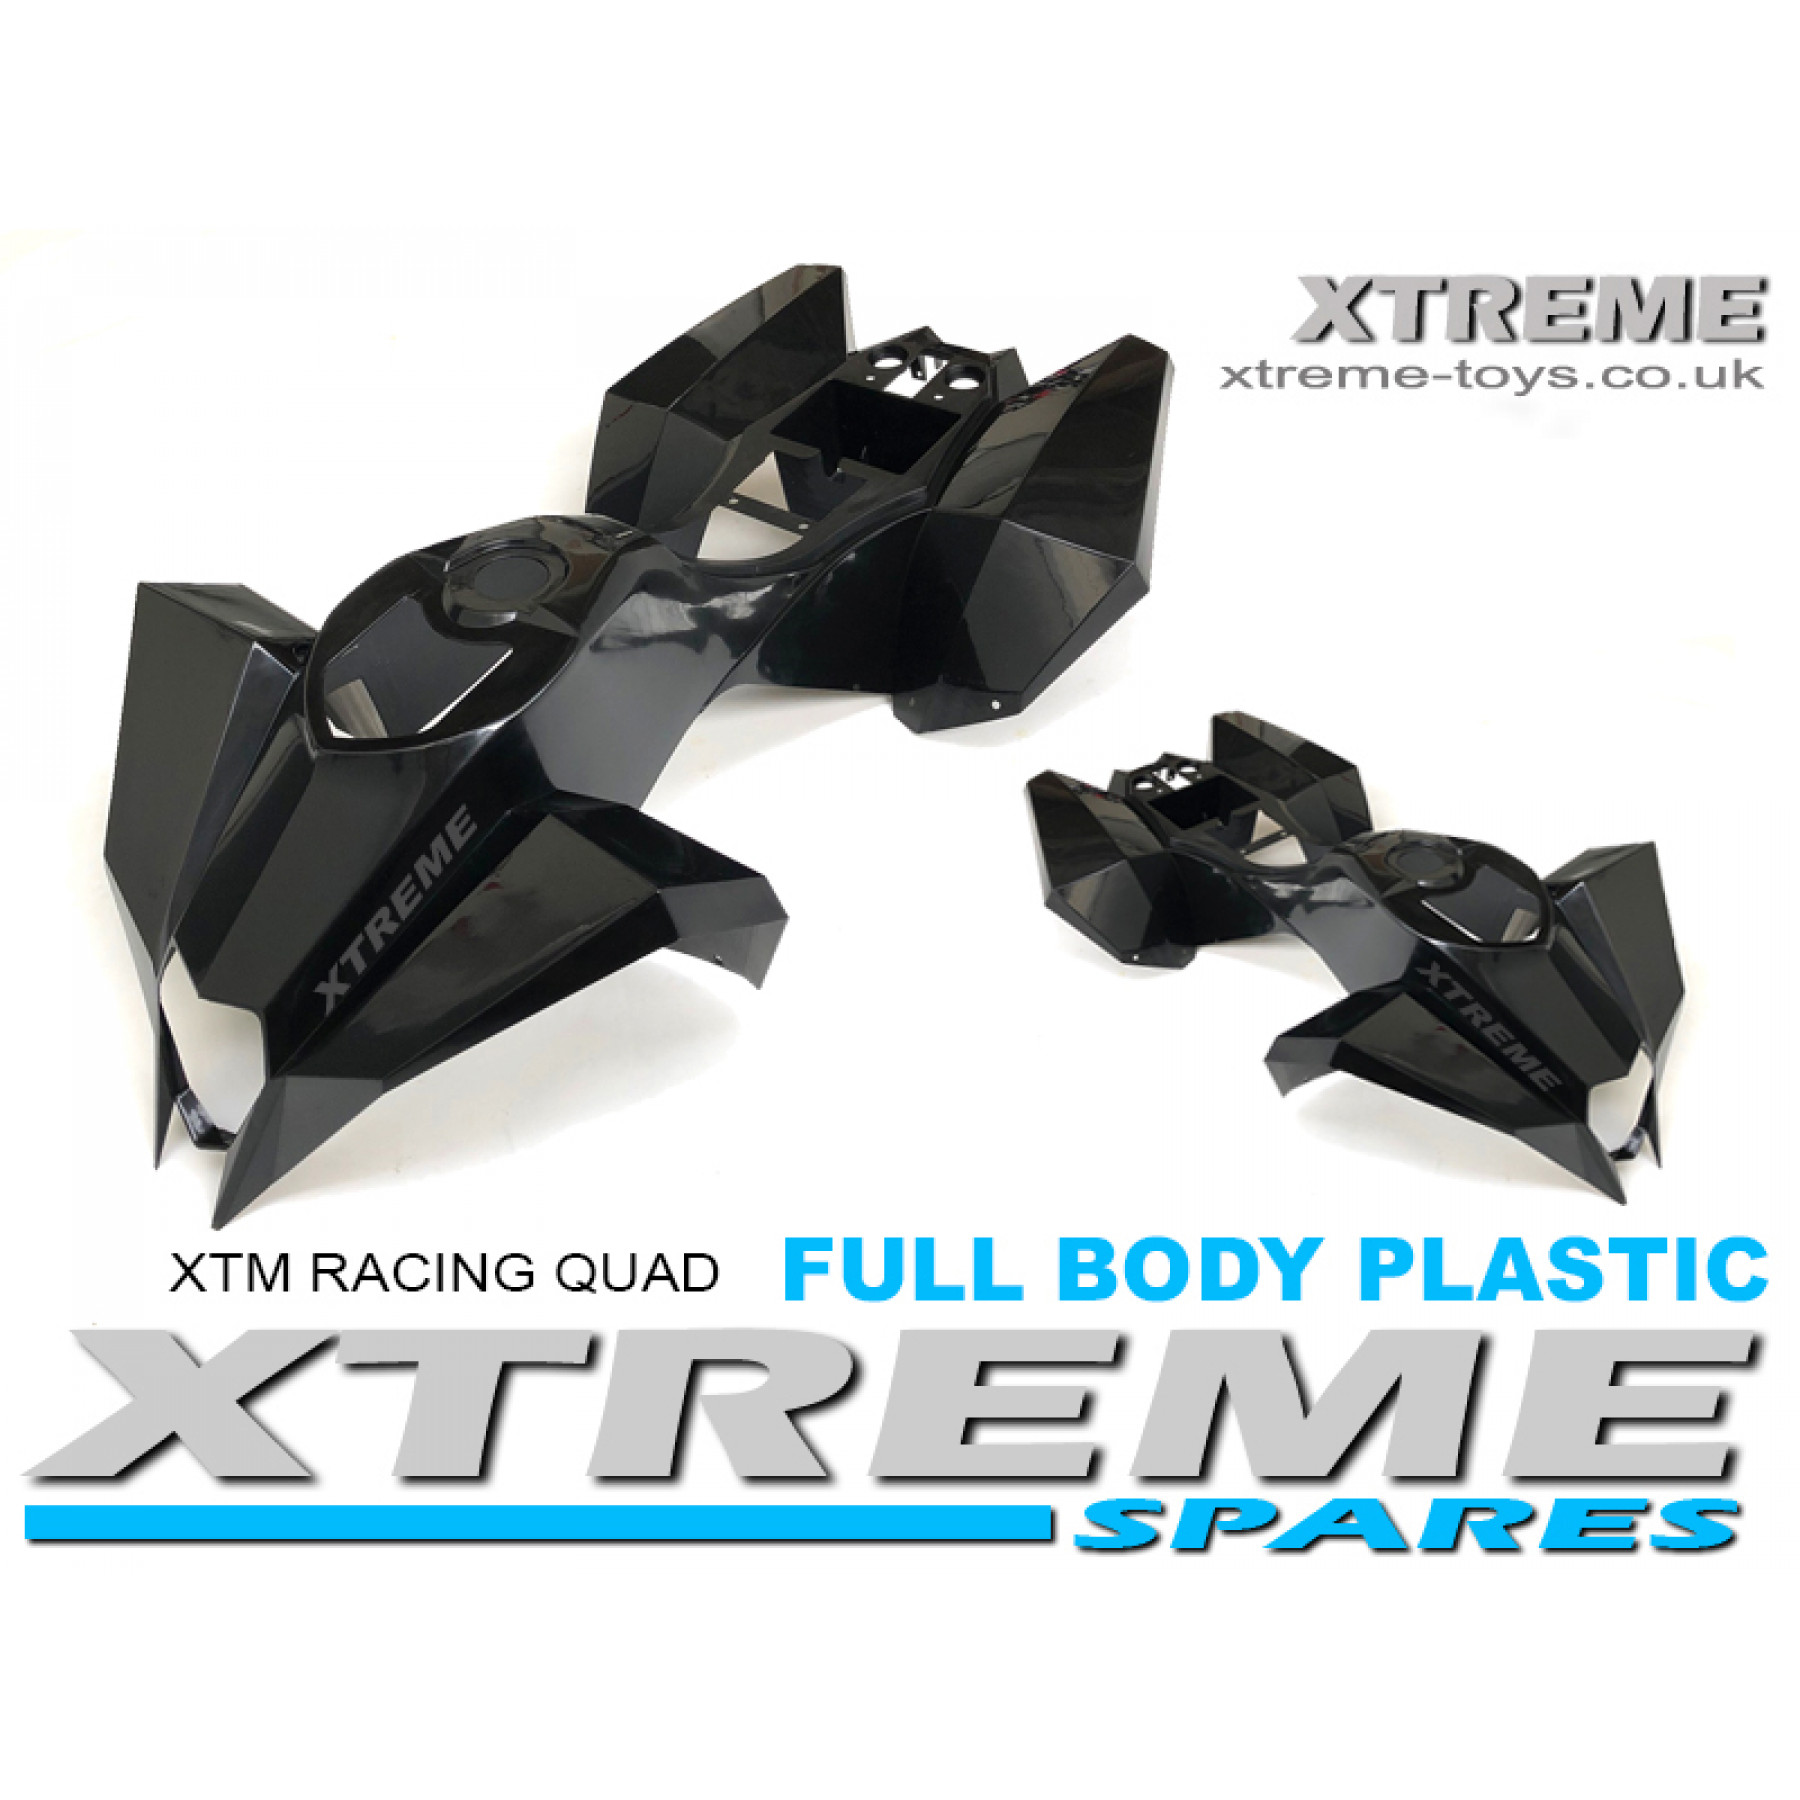 XTM RACING QUAD COMPLETE FULL BODY PLASTIC KIT BLACK